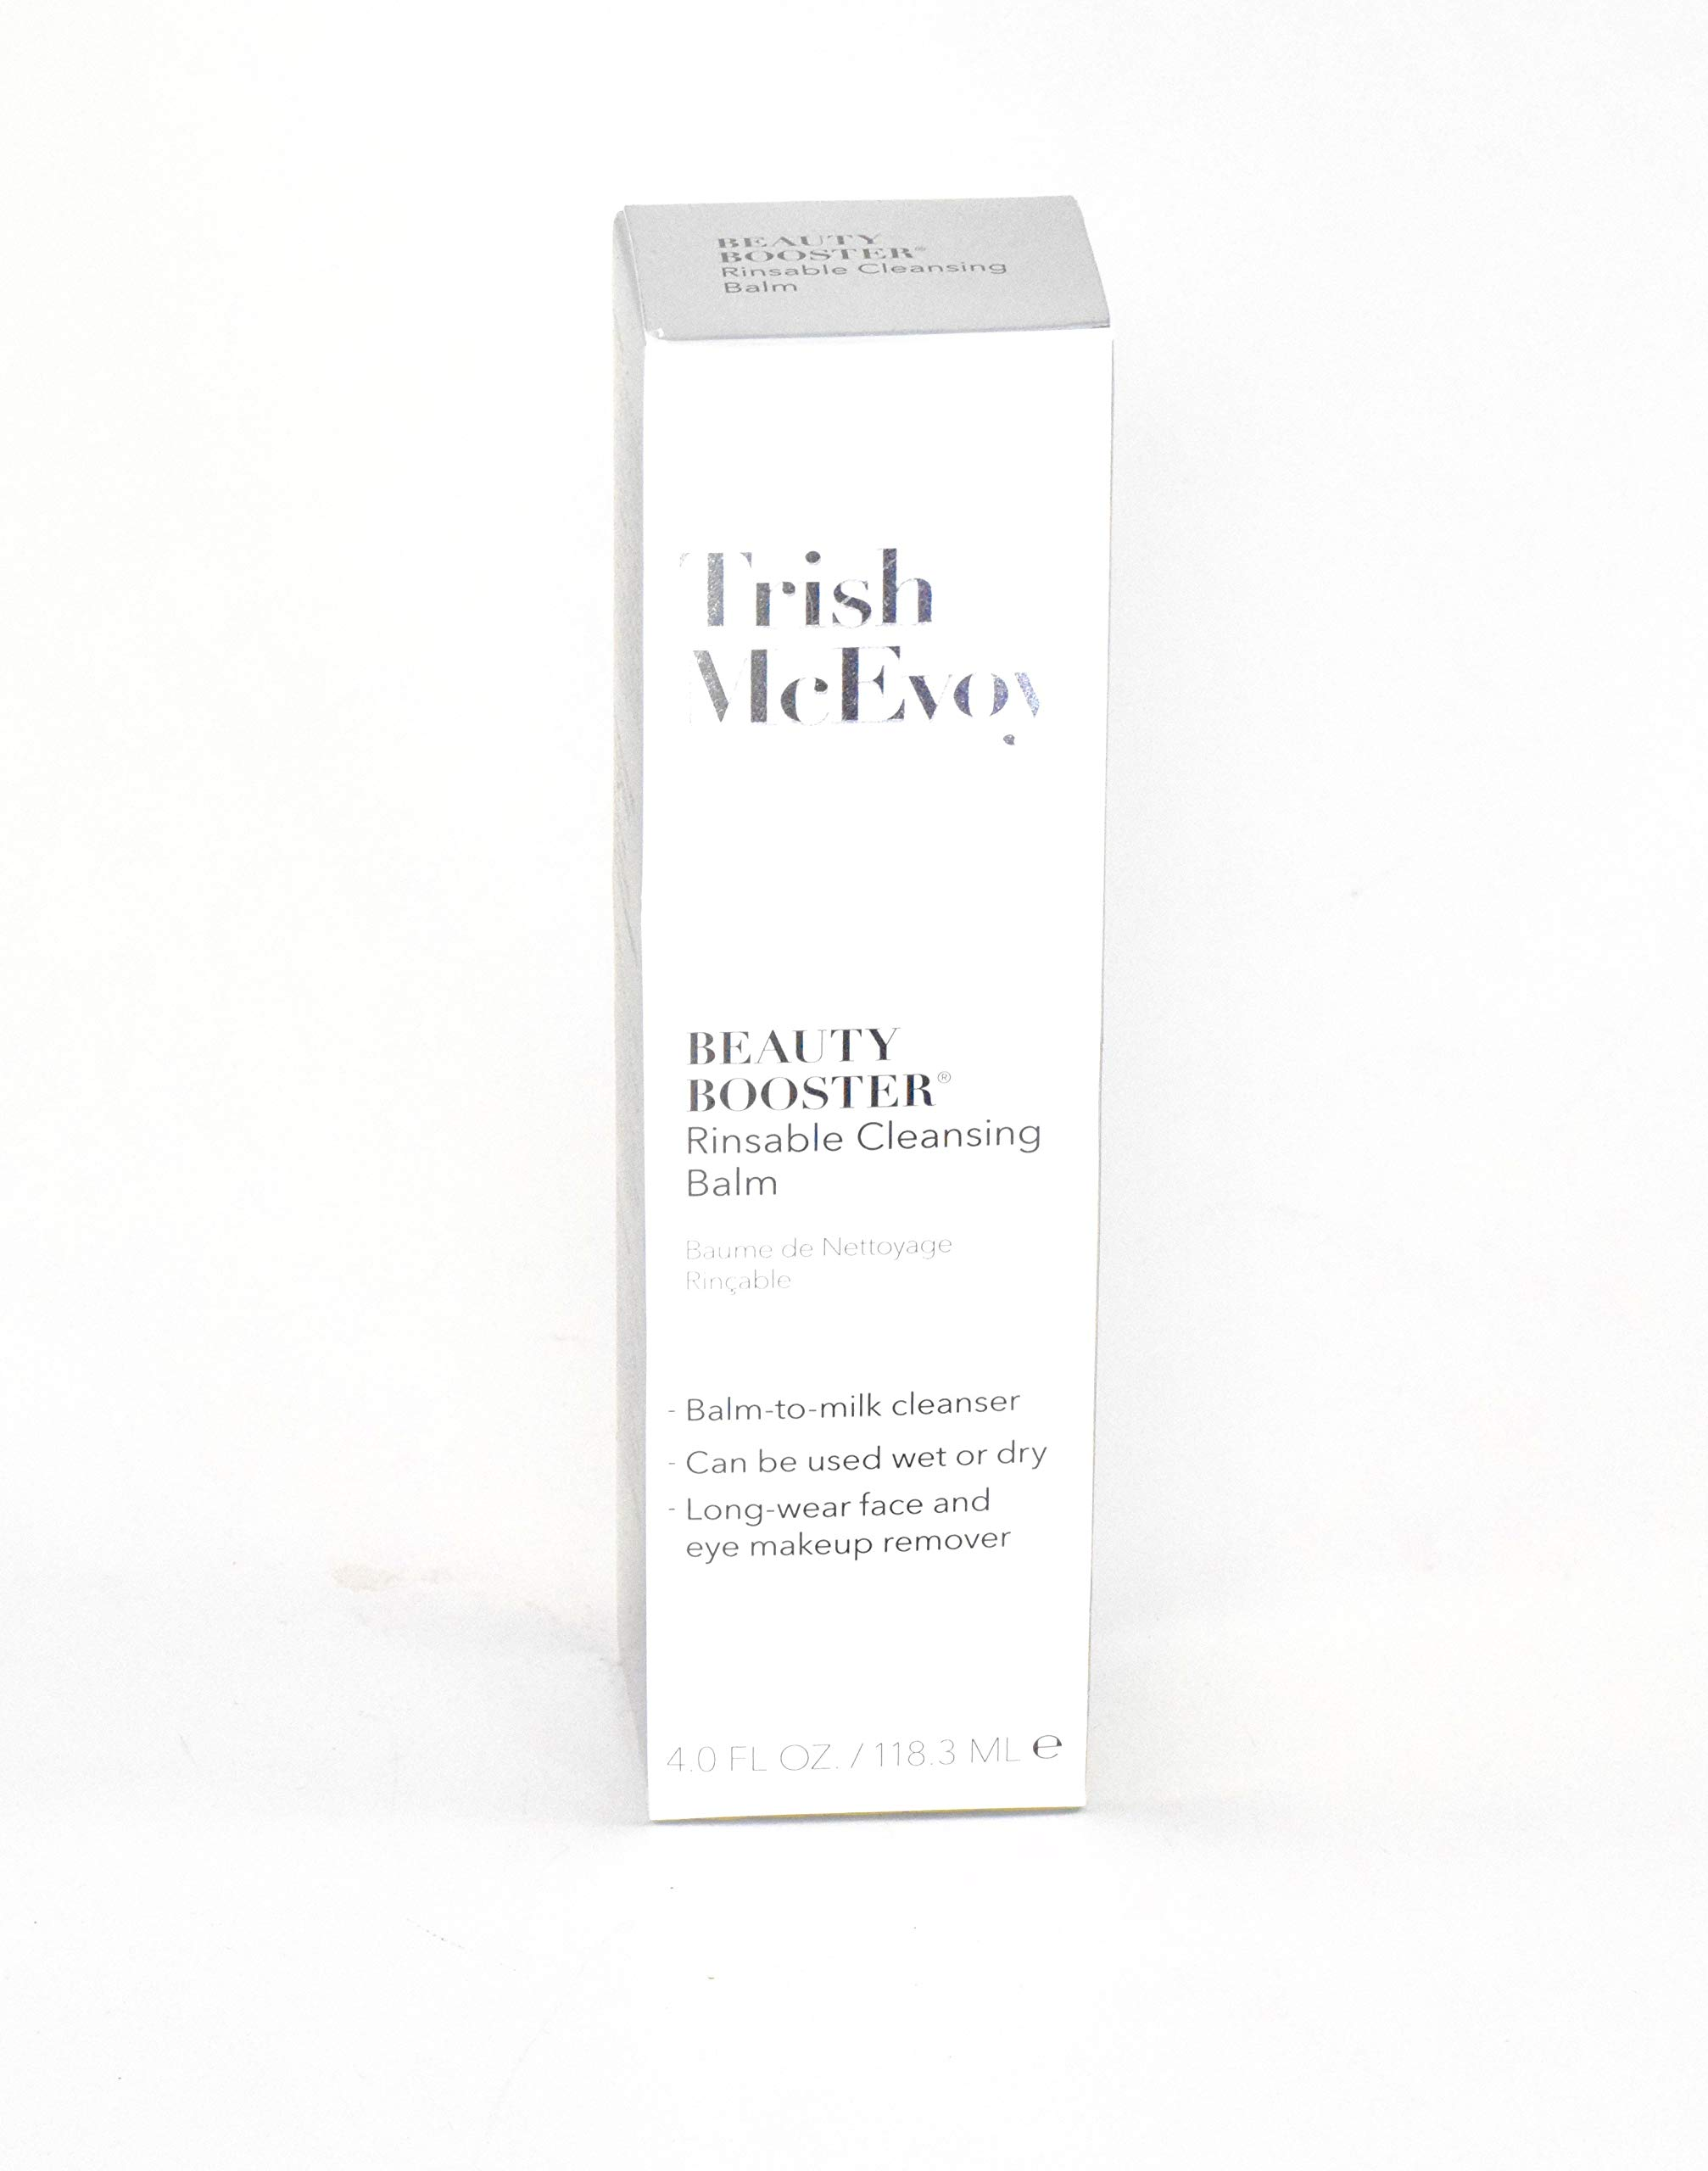 Trish McEvoy Luxuriate Beauty Booster Rinsable Cleansing Makeup Balm 4oz by Trish McEvoy